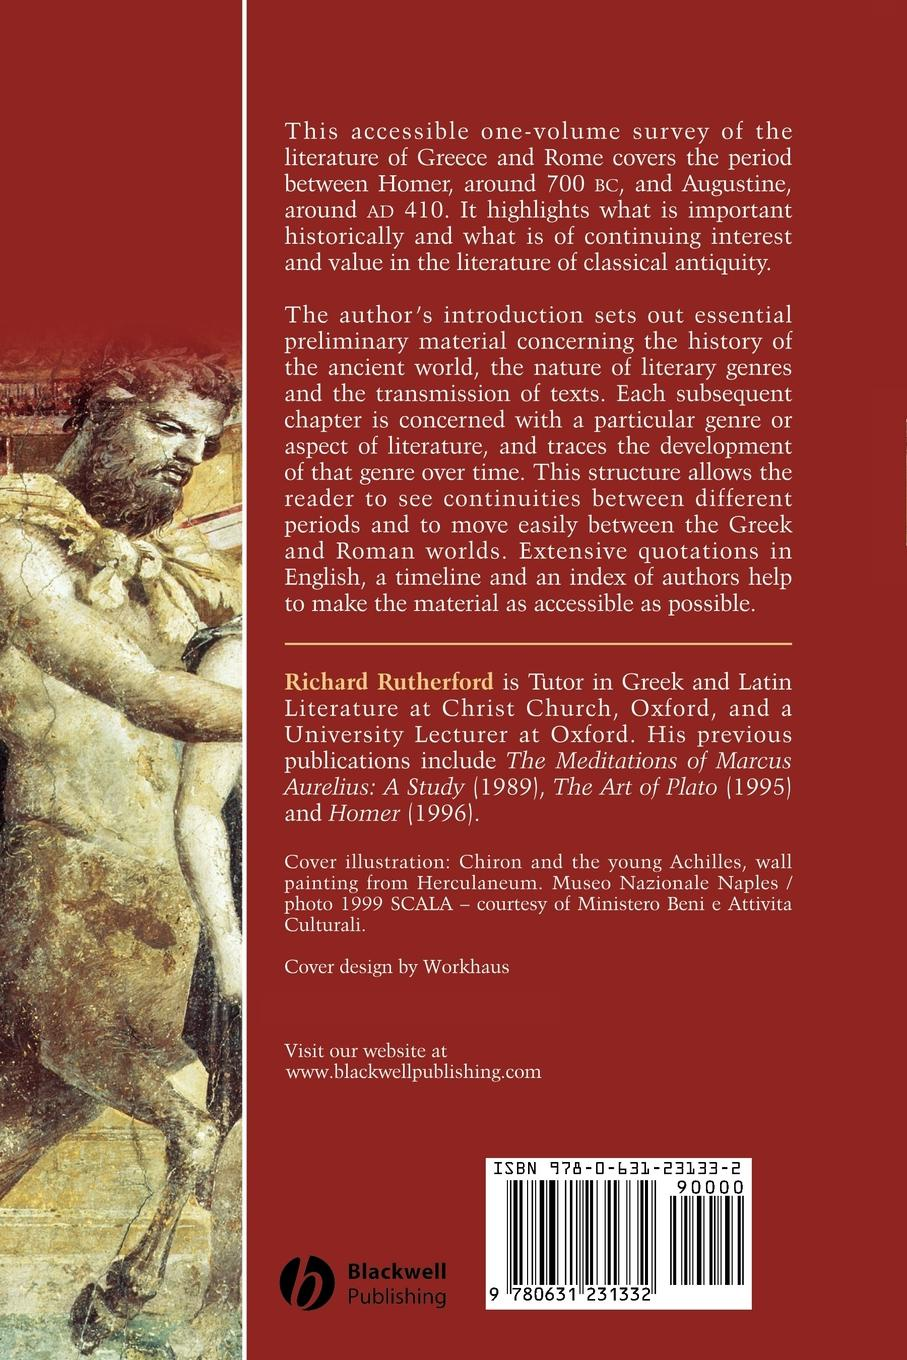 R. B. Rutherford, Richard Rutherford, Rutherford Classical Literature. A Concise History richard gray a history of american literature